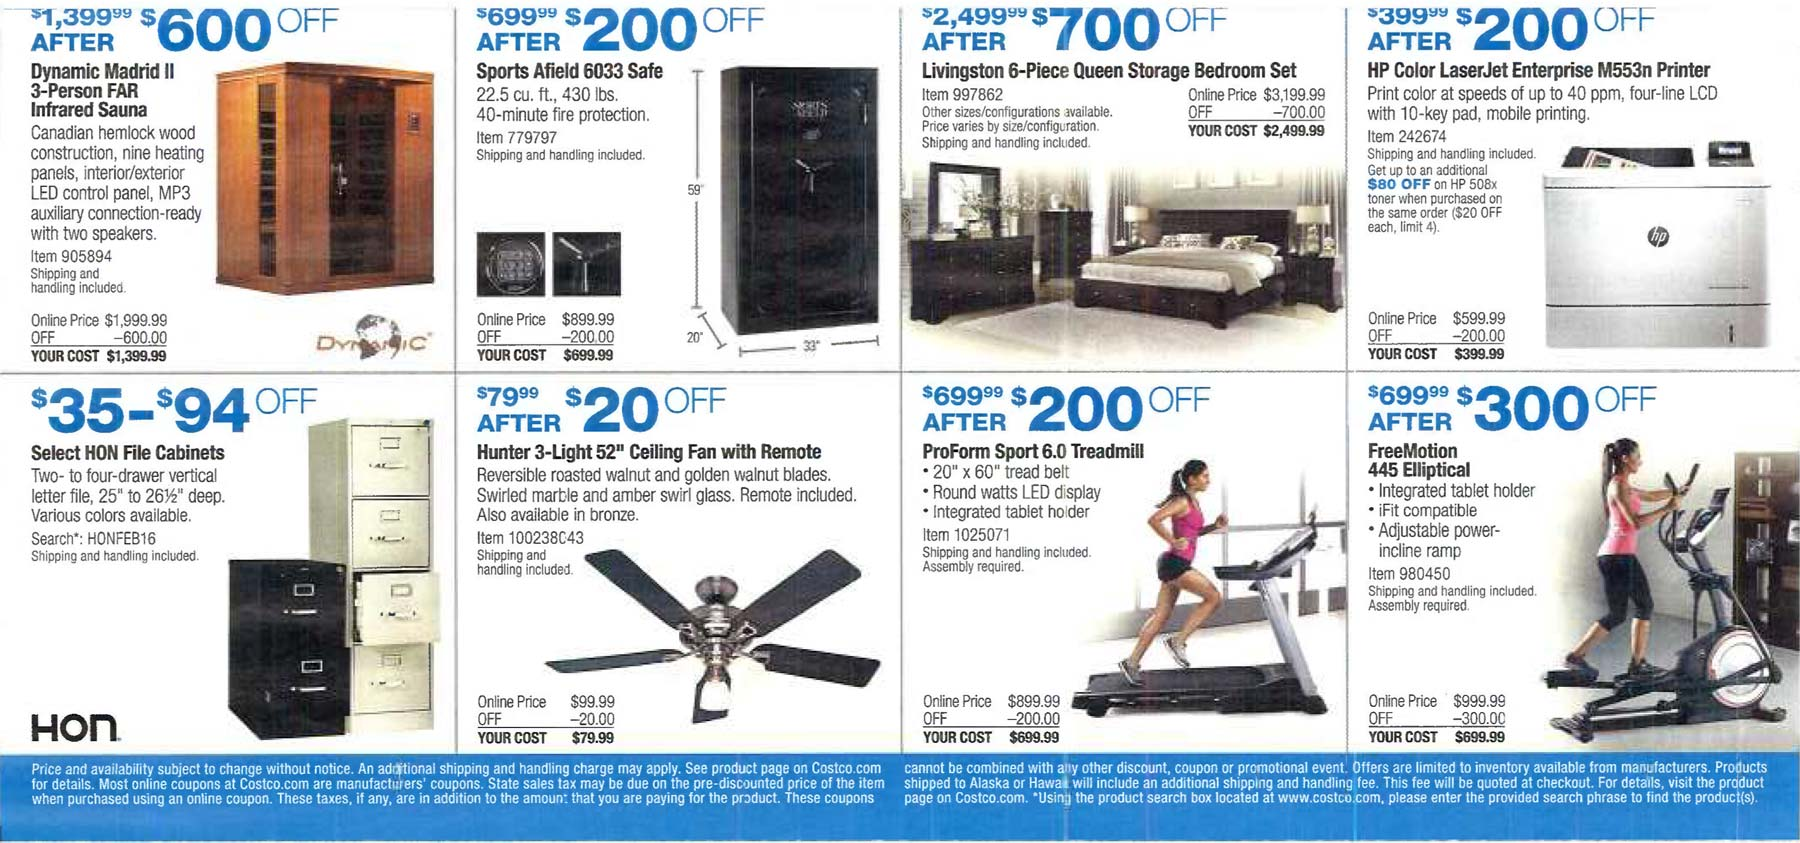 February 2016 Costco Coupon Book Page 15